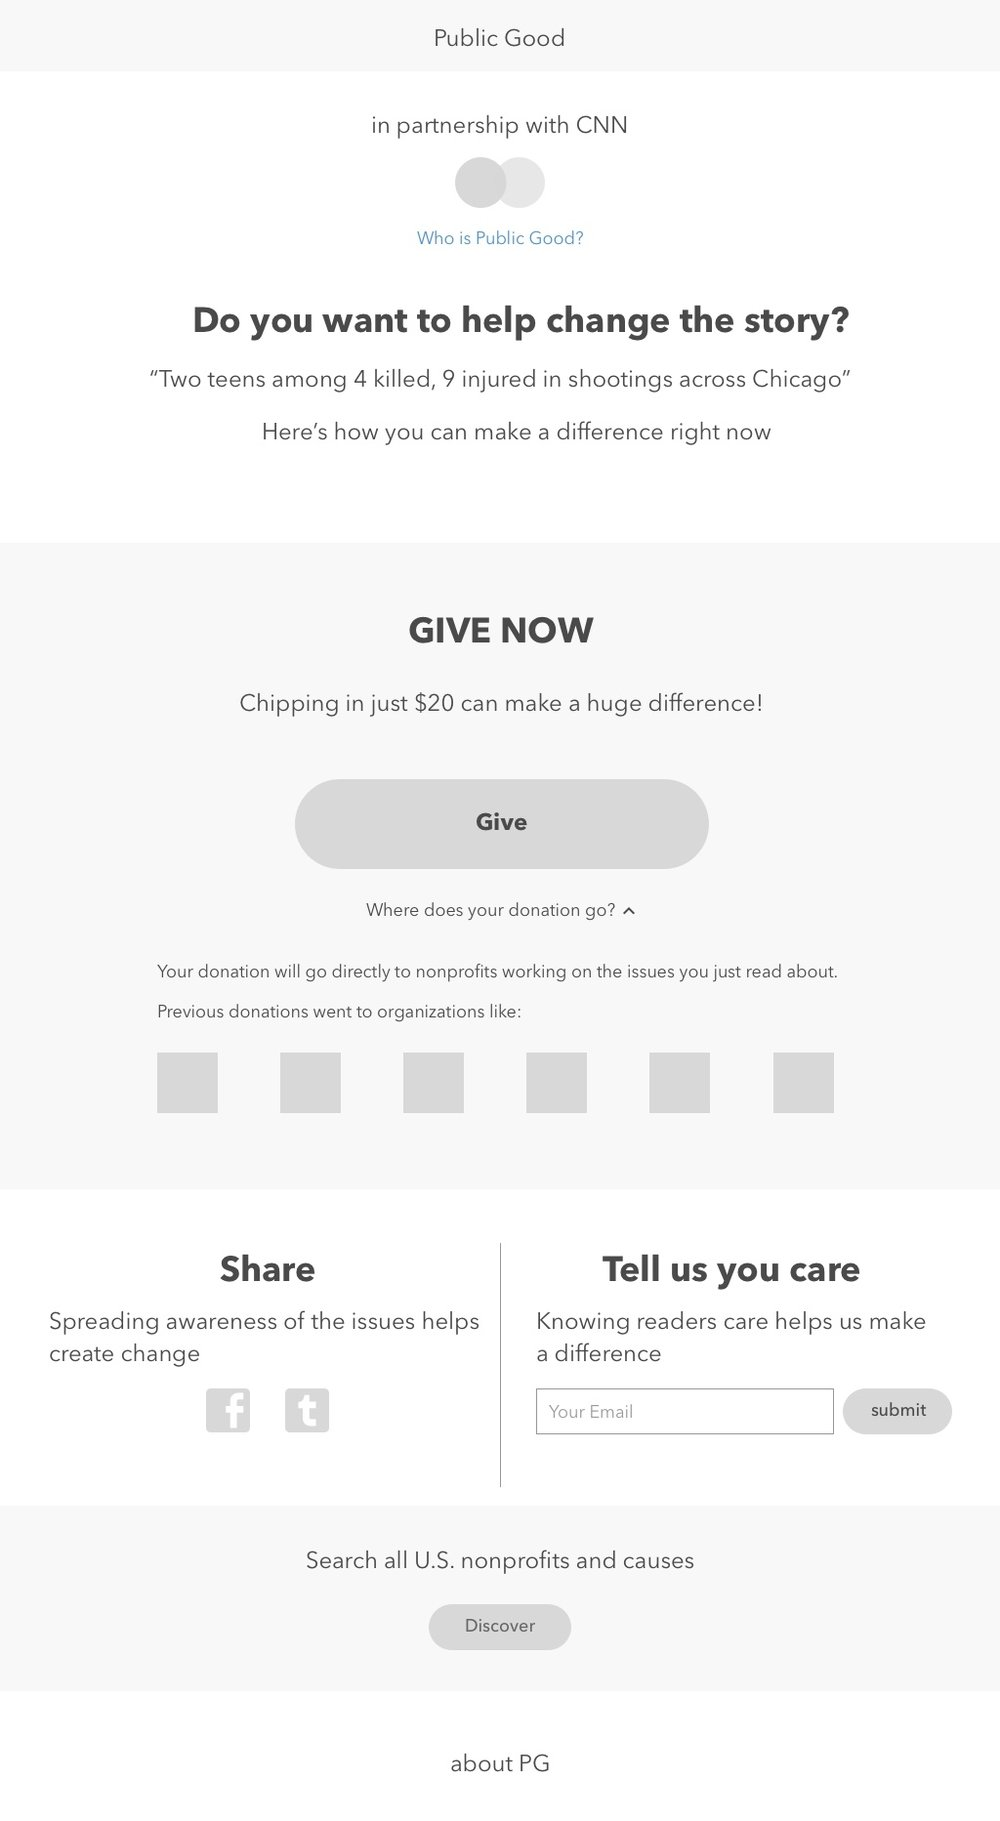 V2b Shows nonprofits that get donations previously